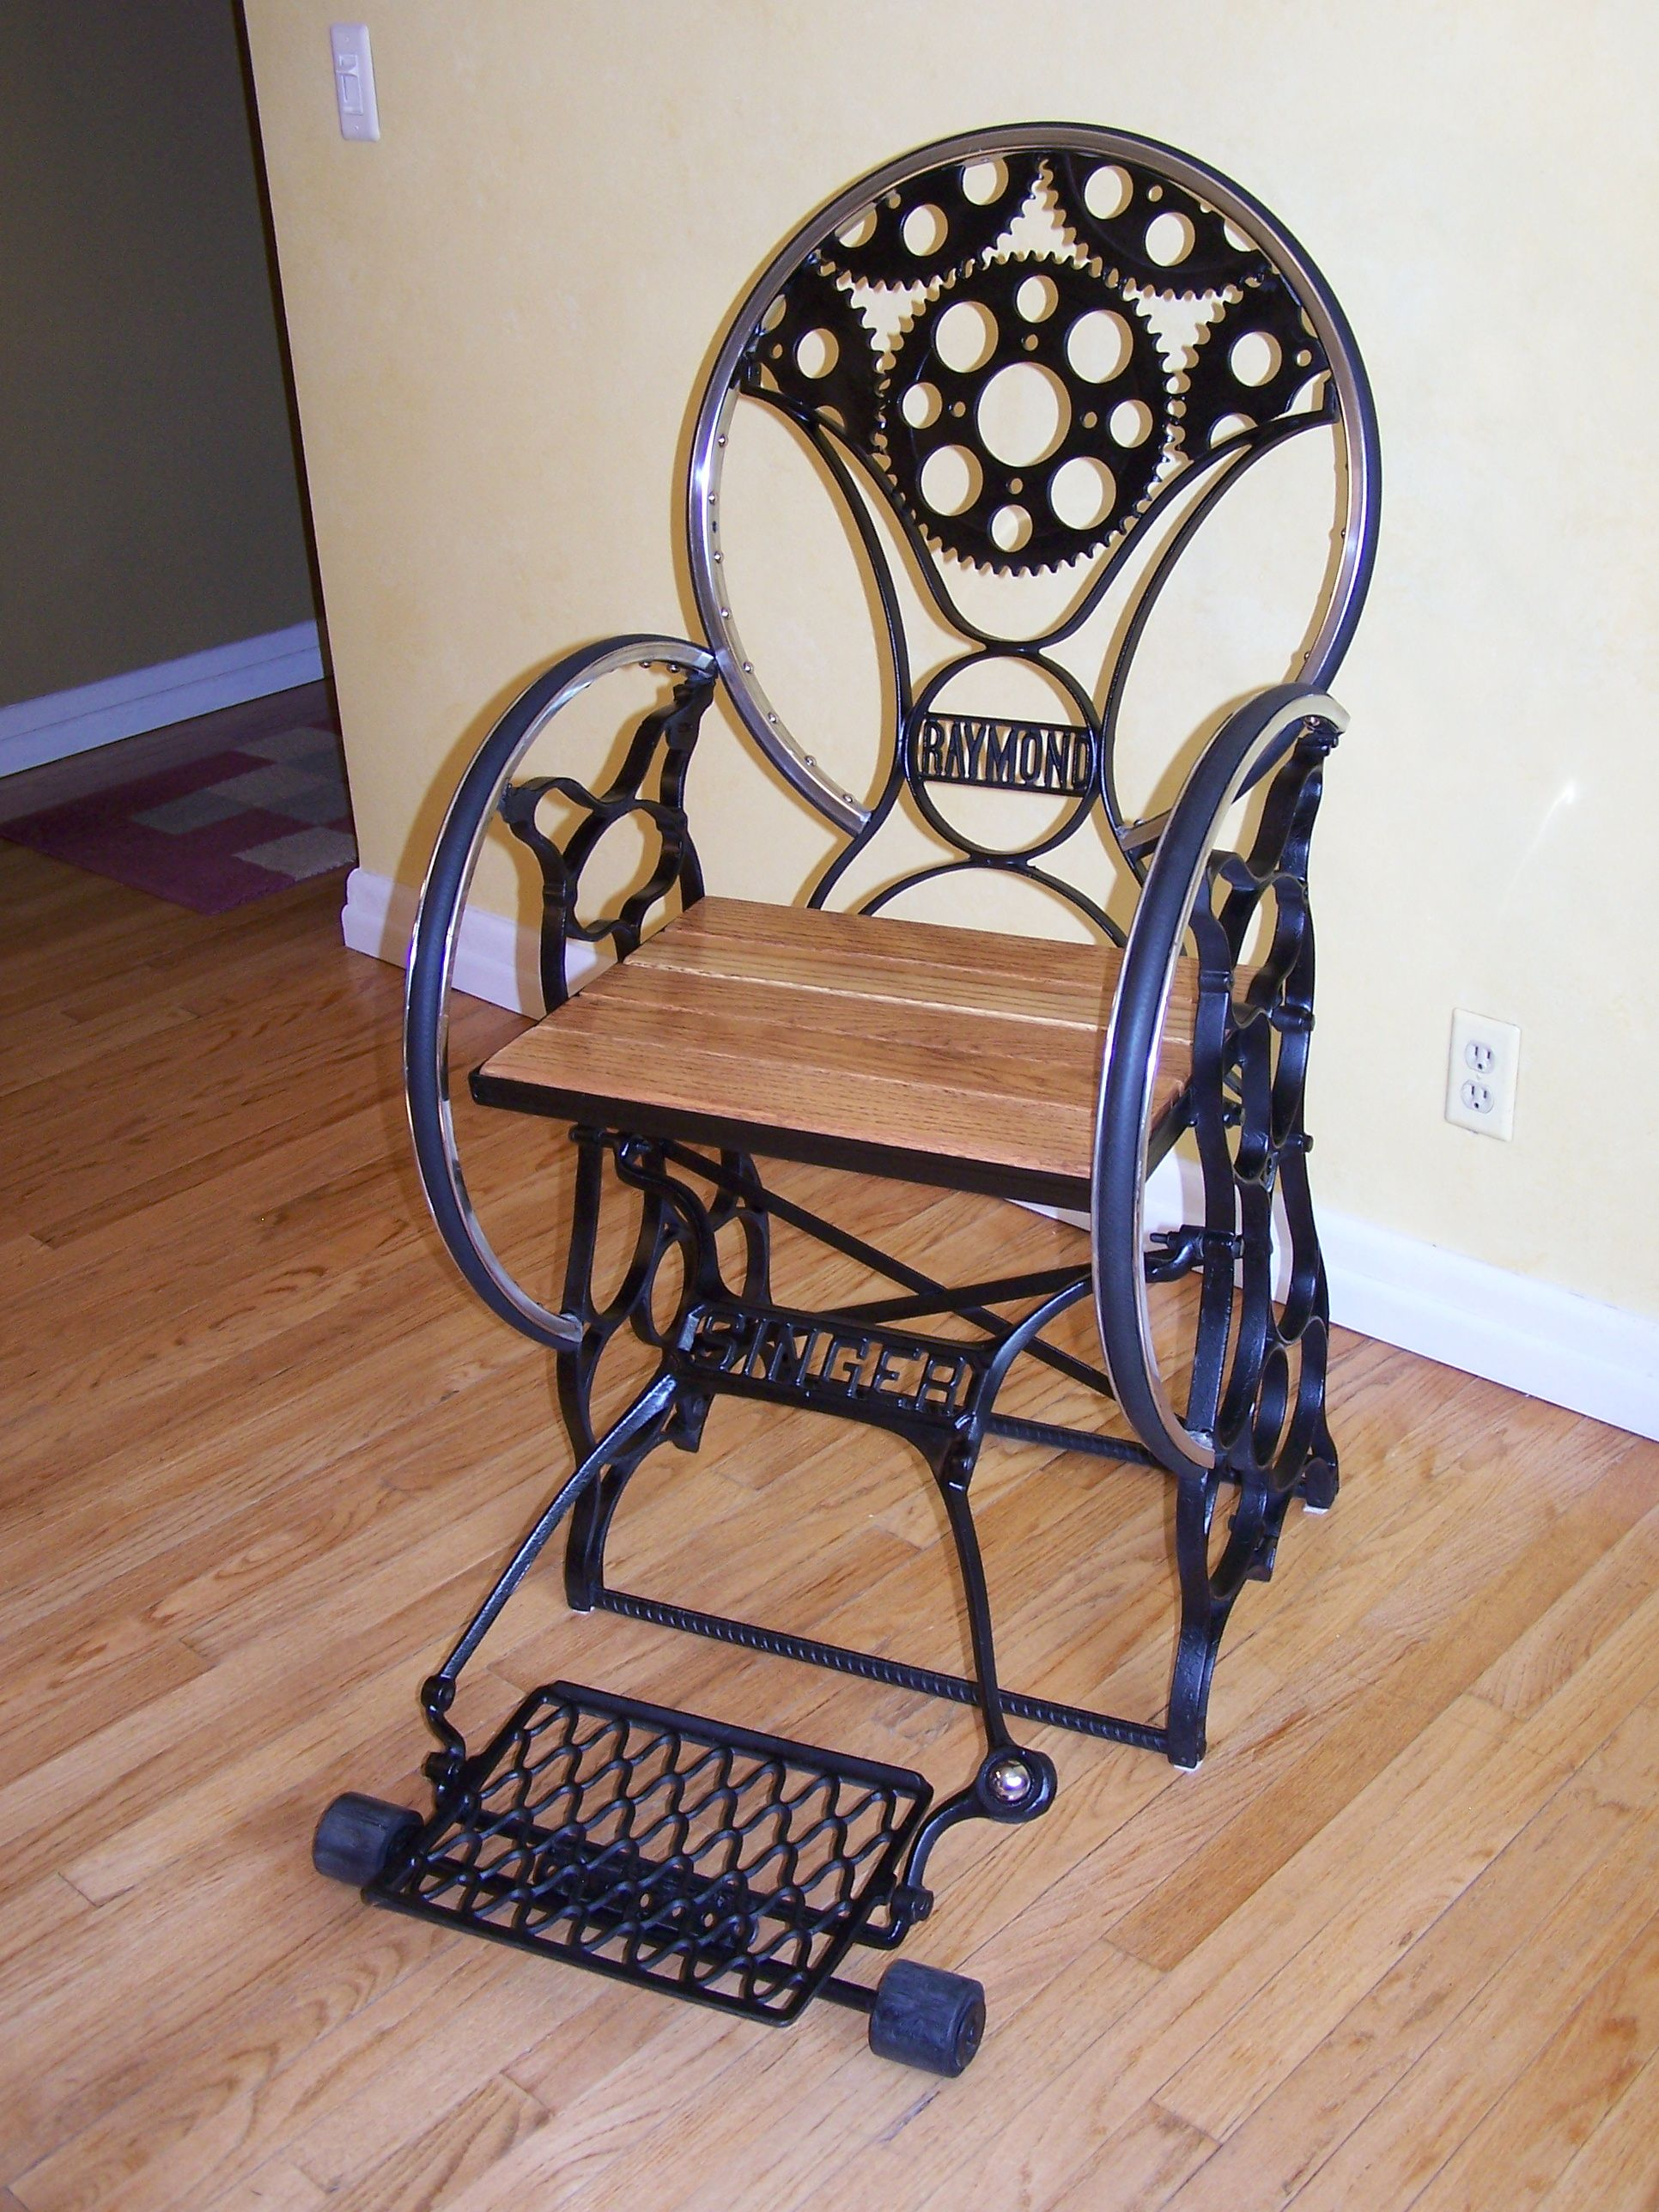 Recycled sewing machine chair very cool upcycle for Ausgefallene wohnideen